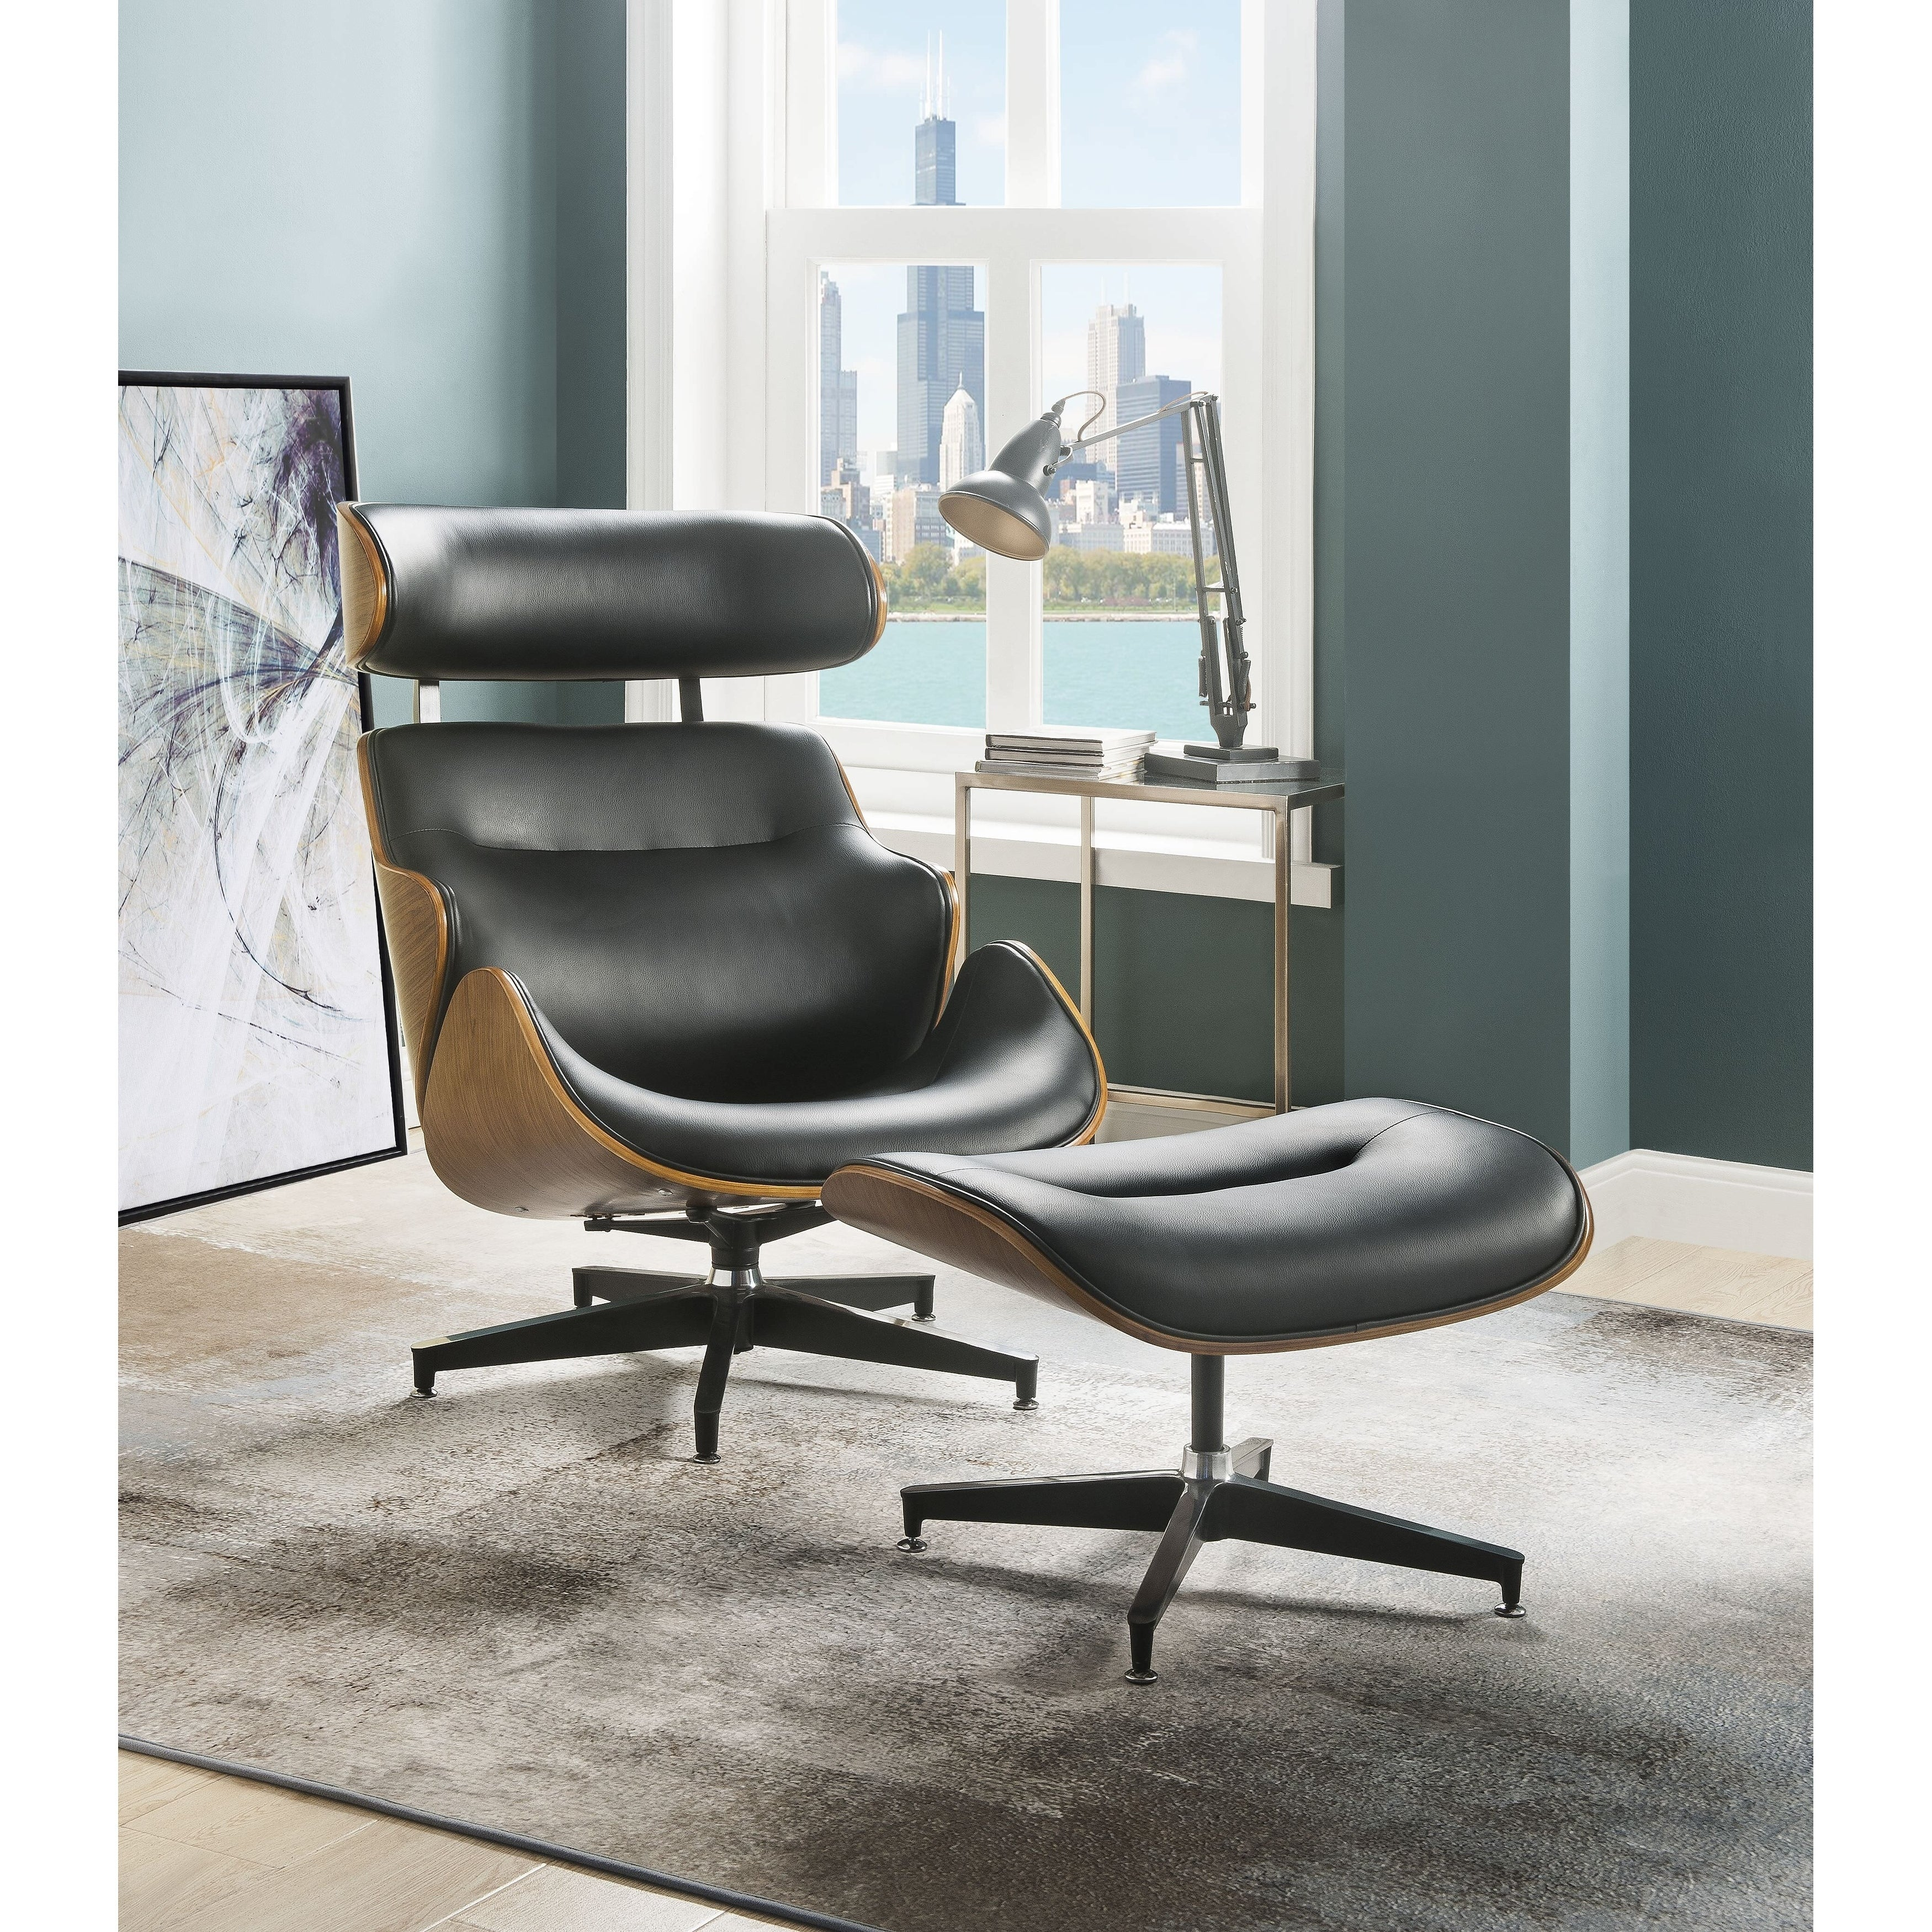 Pleasing Acme Herne 2 Pieces Pack Chair And Ottoman Black Bonded Leather And Walnut Uwap Interior Chair Design Uwaporg